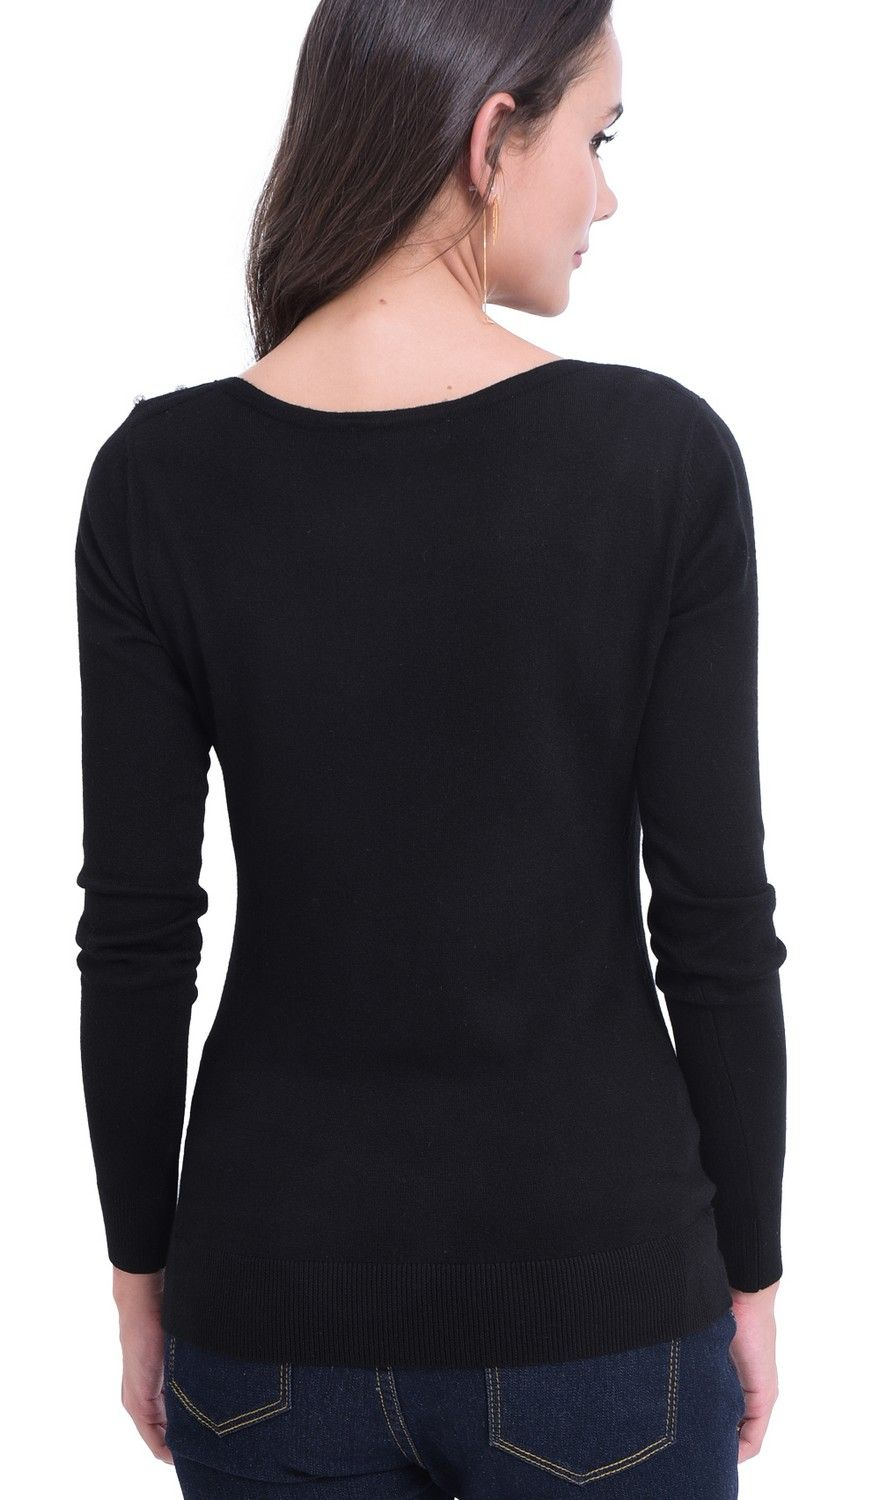 William De Faye Diamond Round Neck Sweater in Black